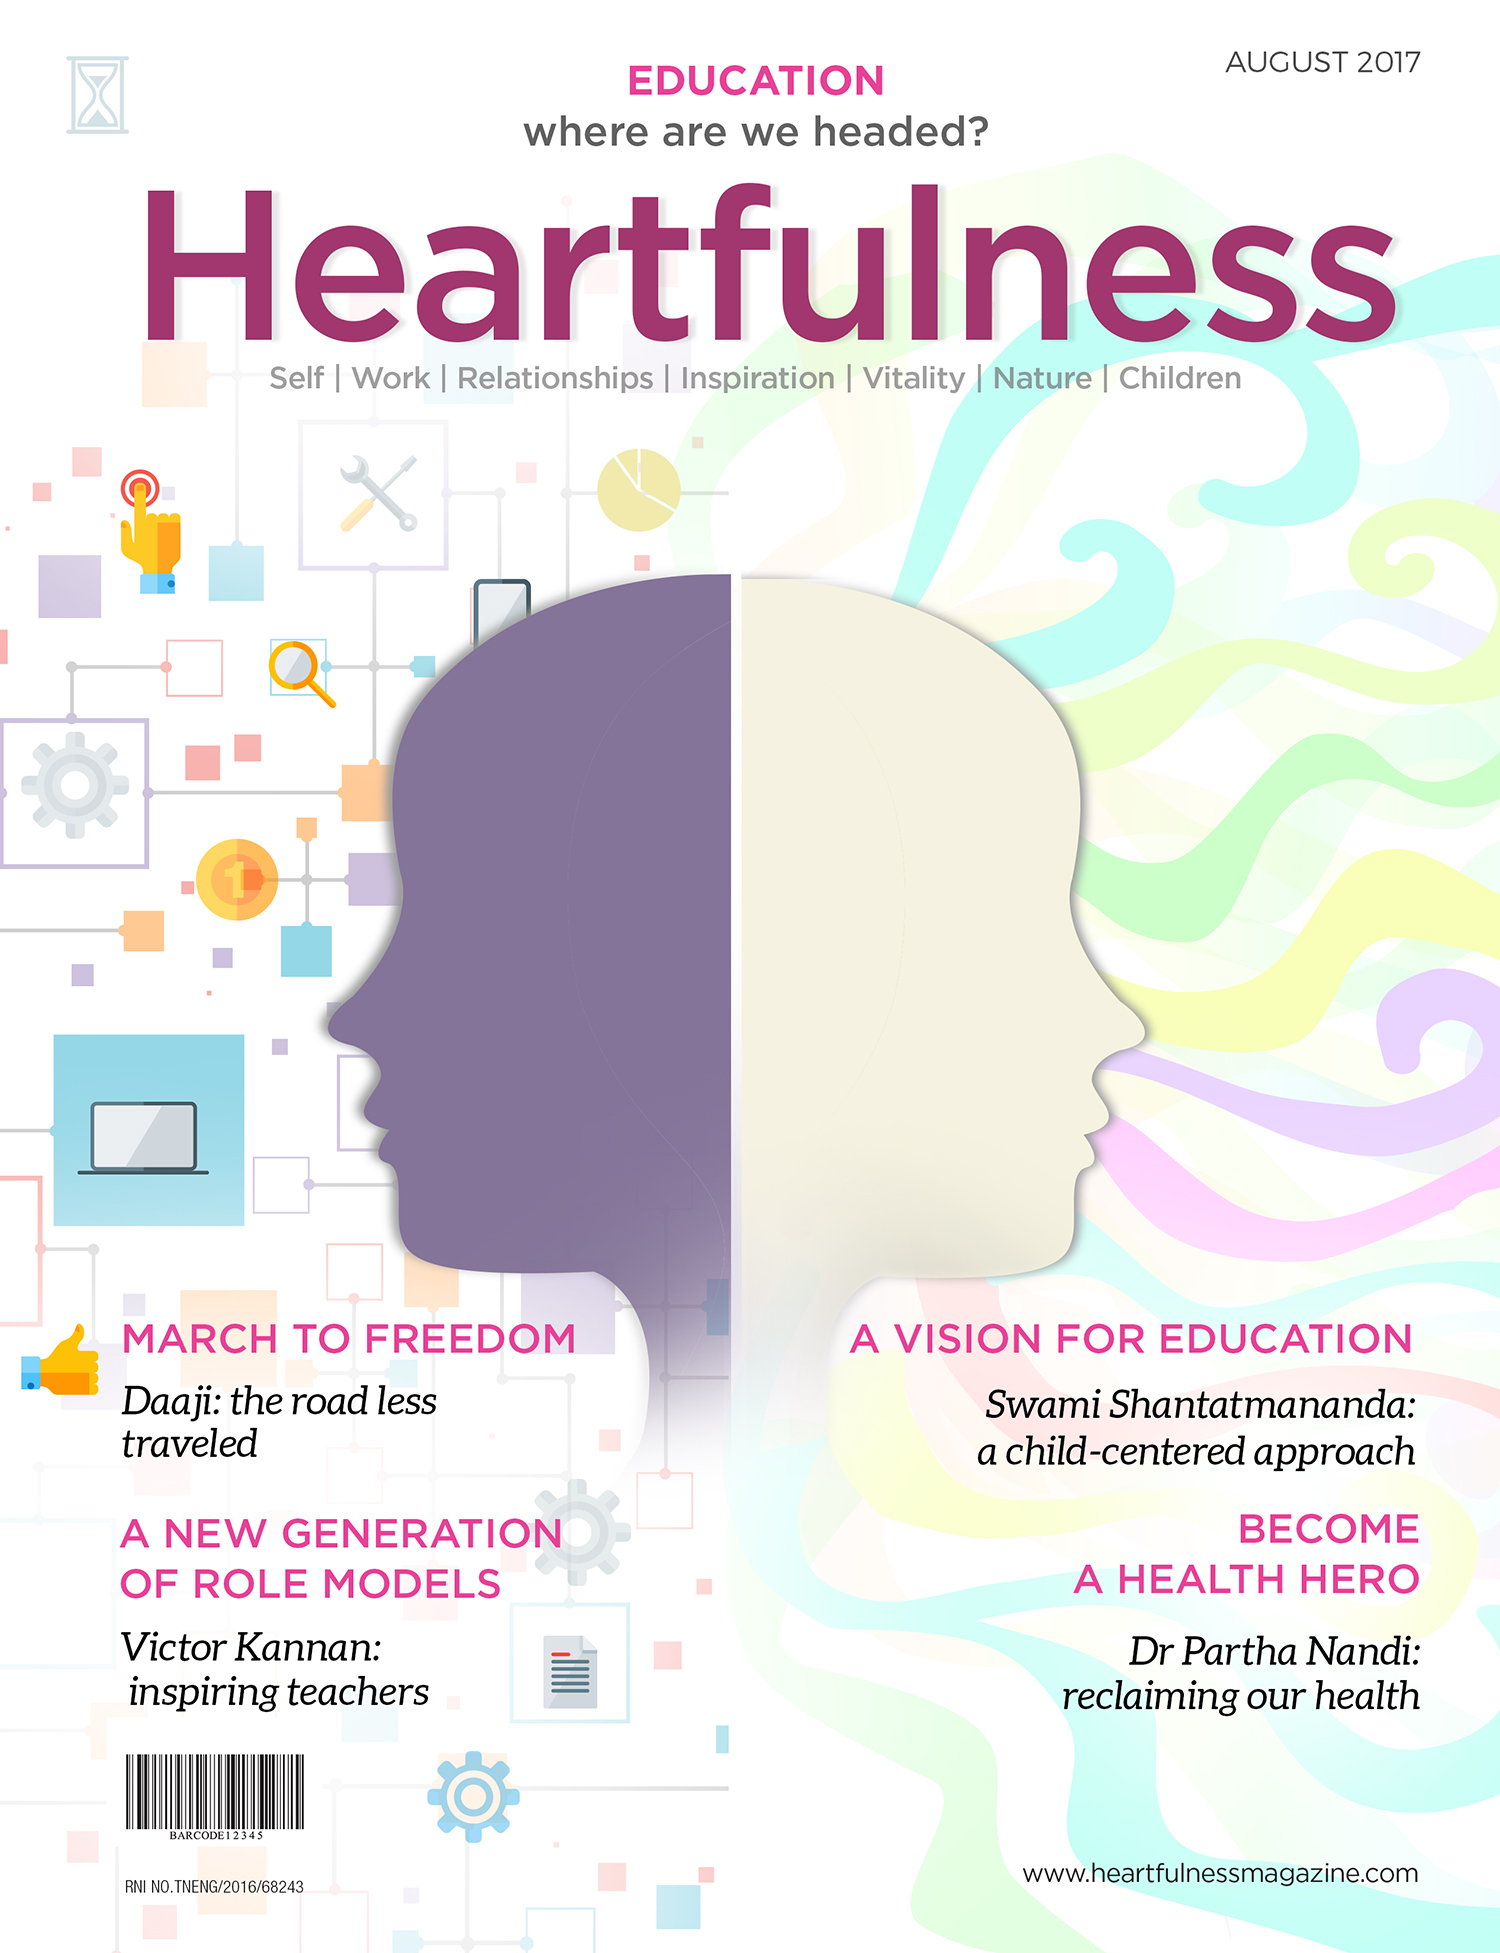 Heartfulness eMagazine - August 2017